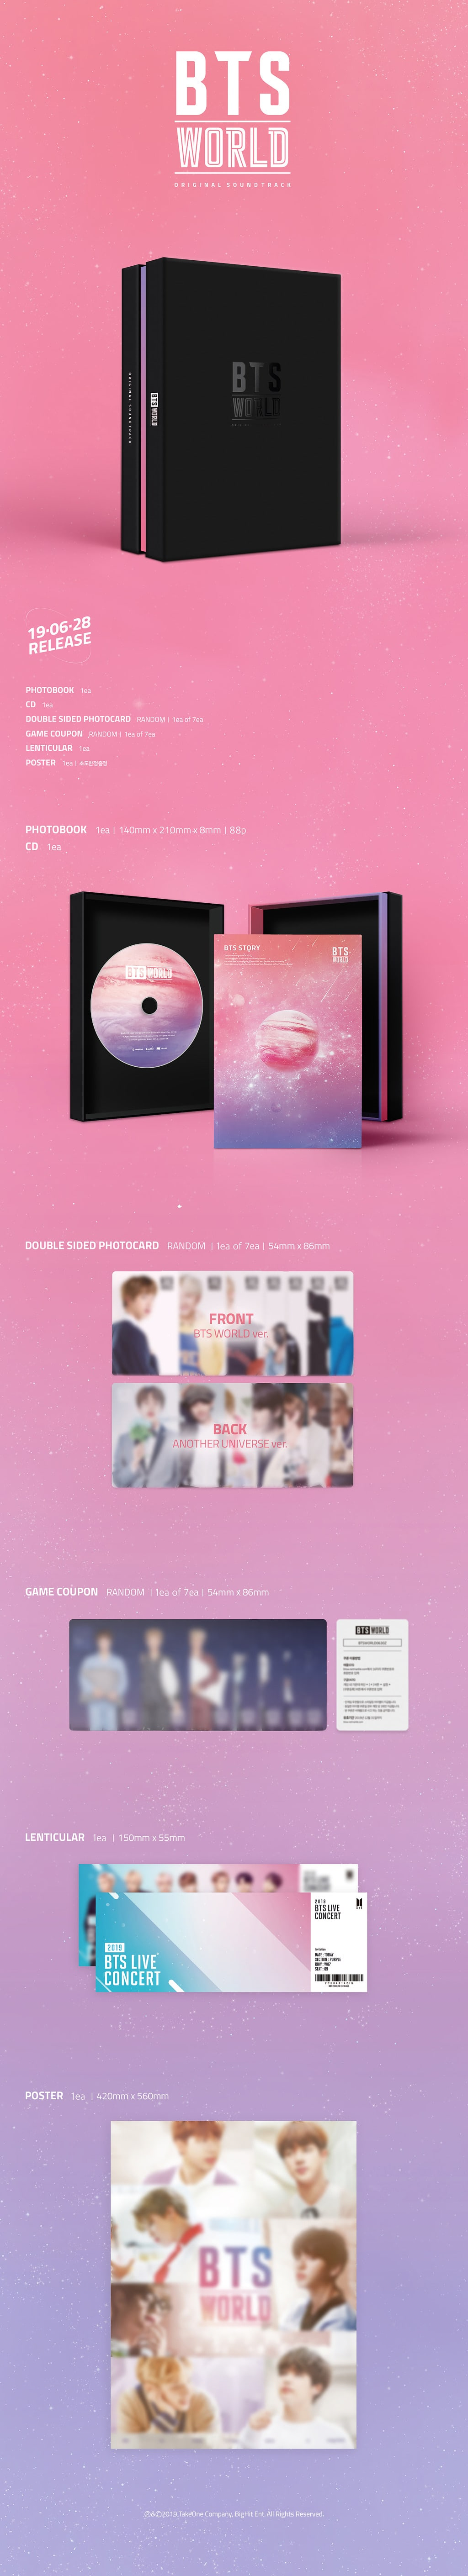 BTS World OST